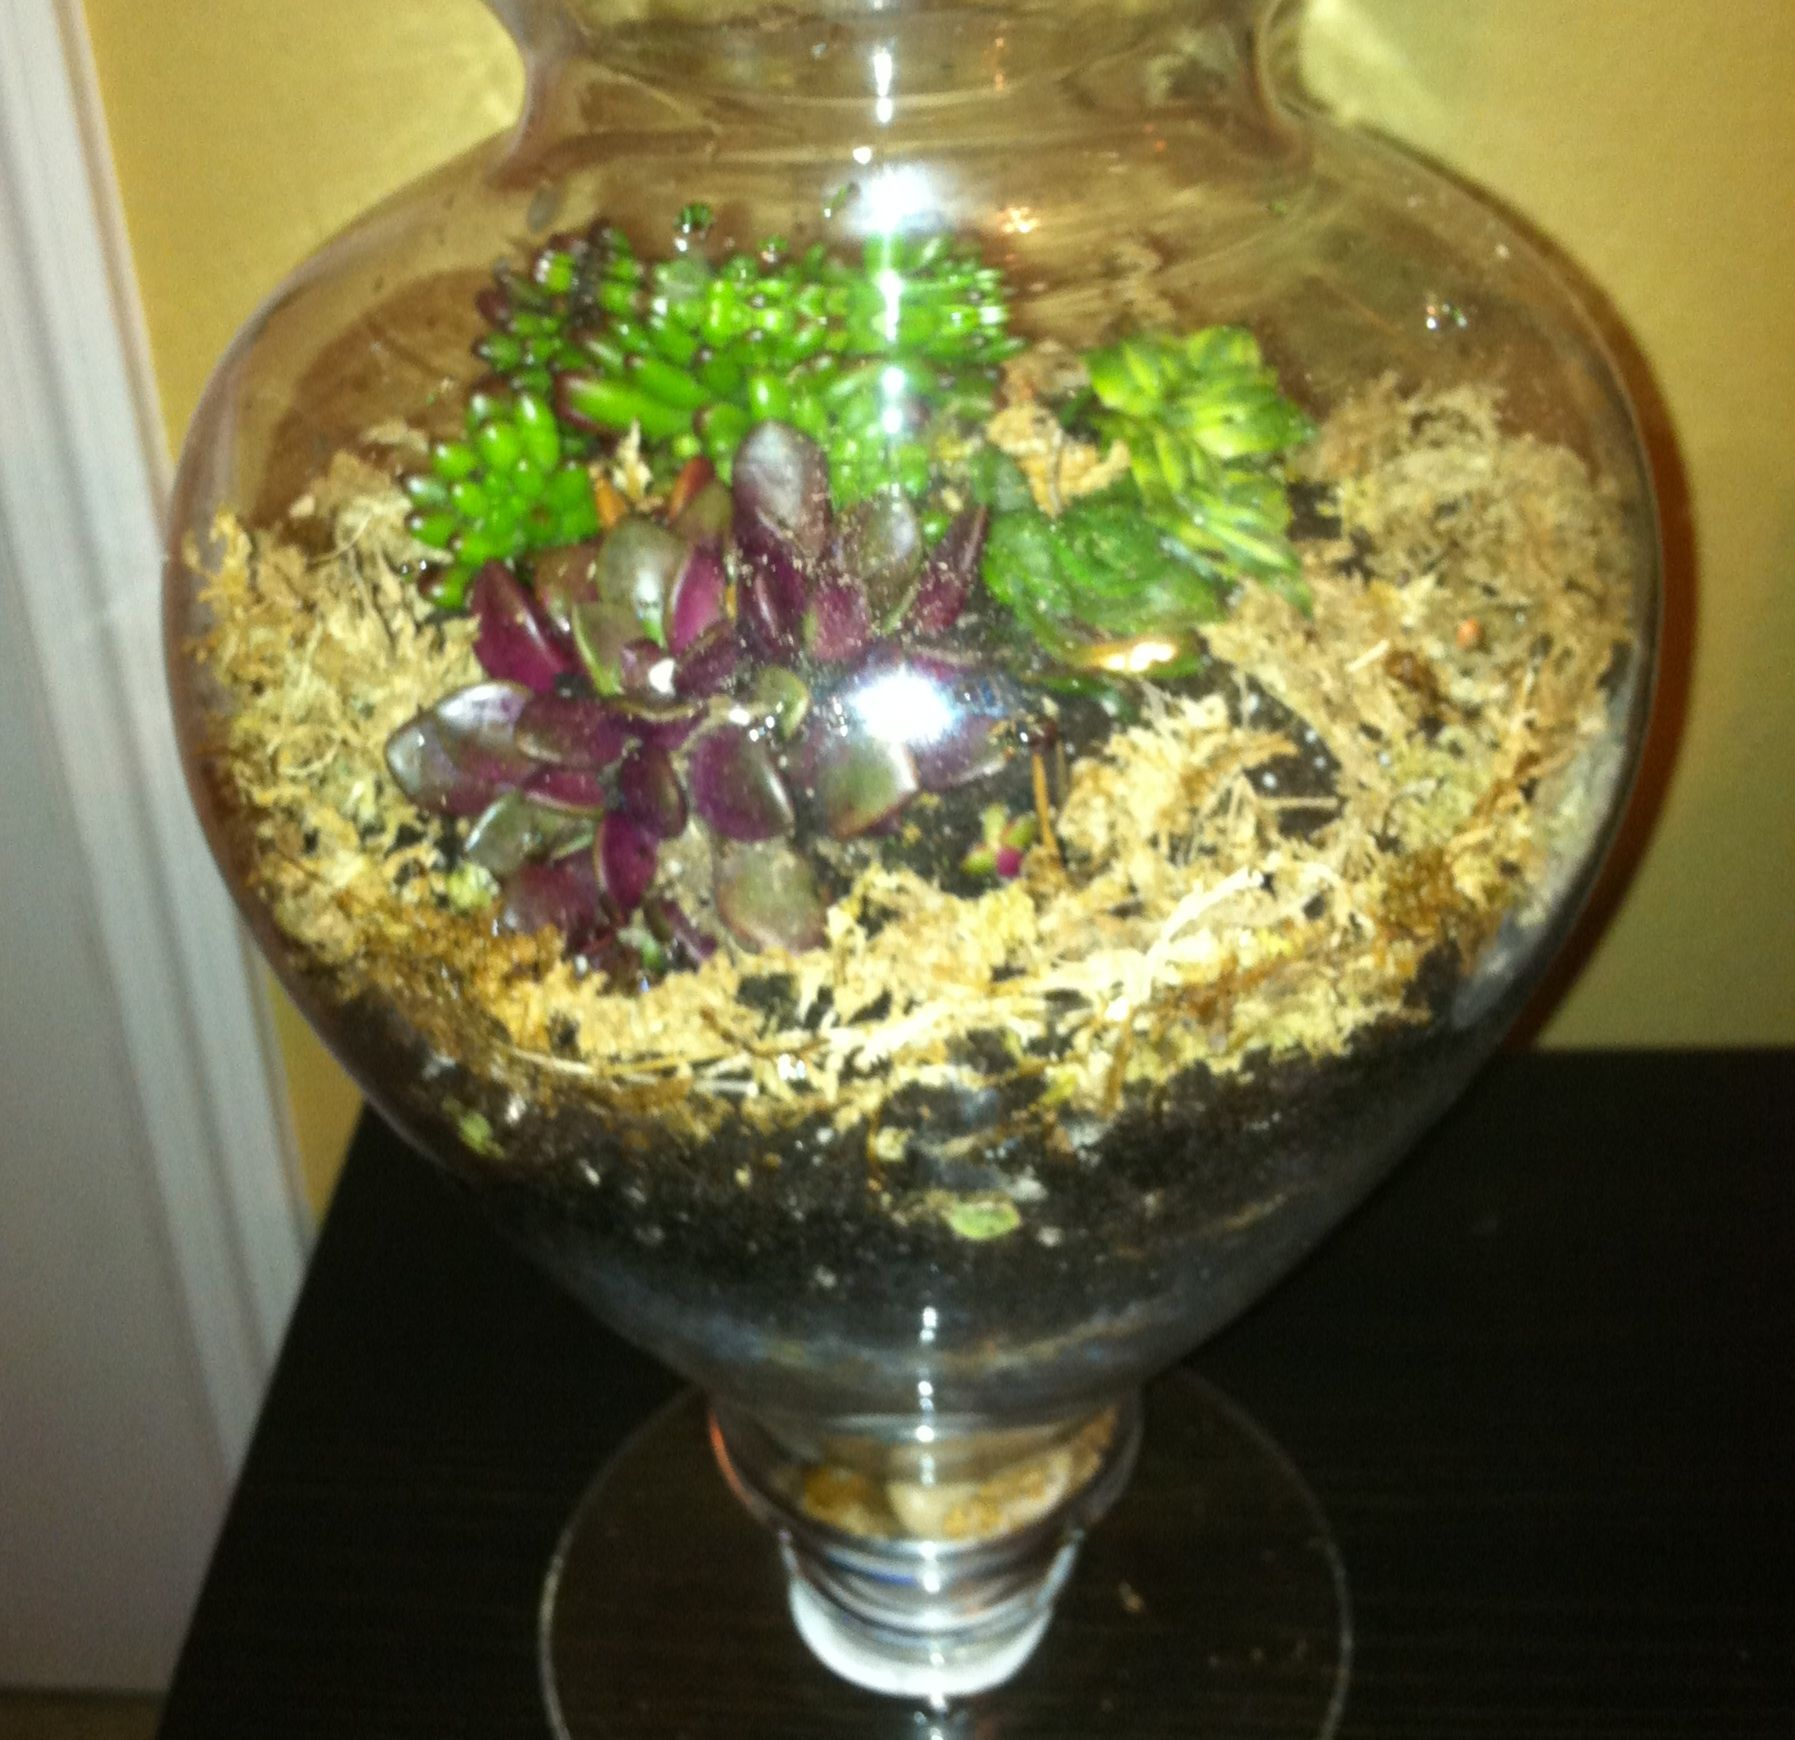 Made this terrarium today! Used an apothecary jar that housed candy at our wedding, stones, Spanish moss, potting soil, and succulents.  =)  Lots of info on terrariums available here: http://www.stormthecastle.com/terrarium/